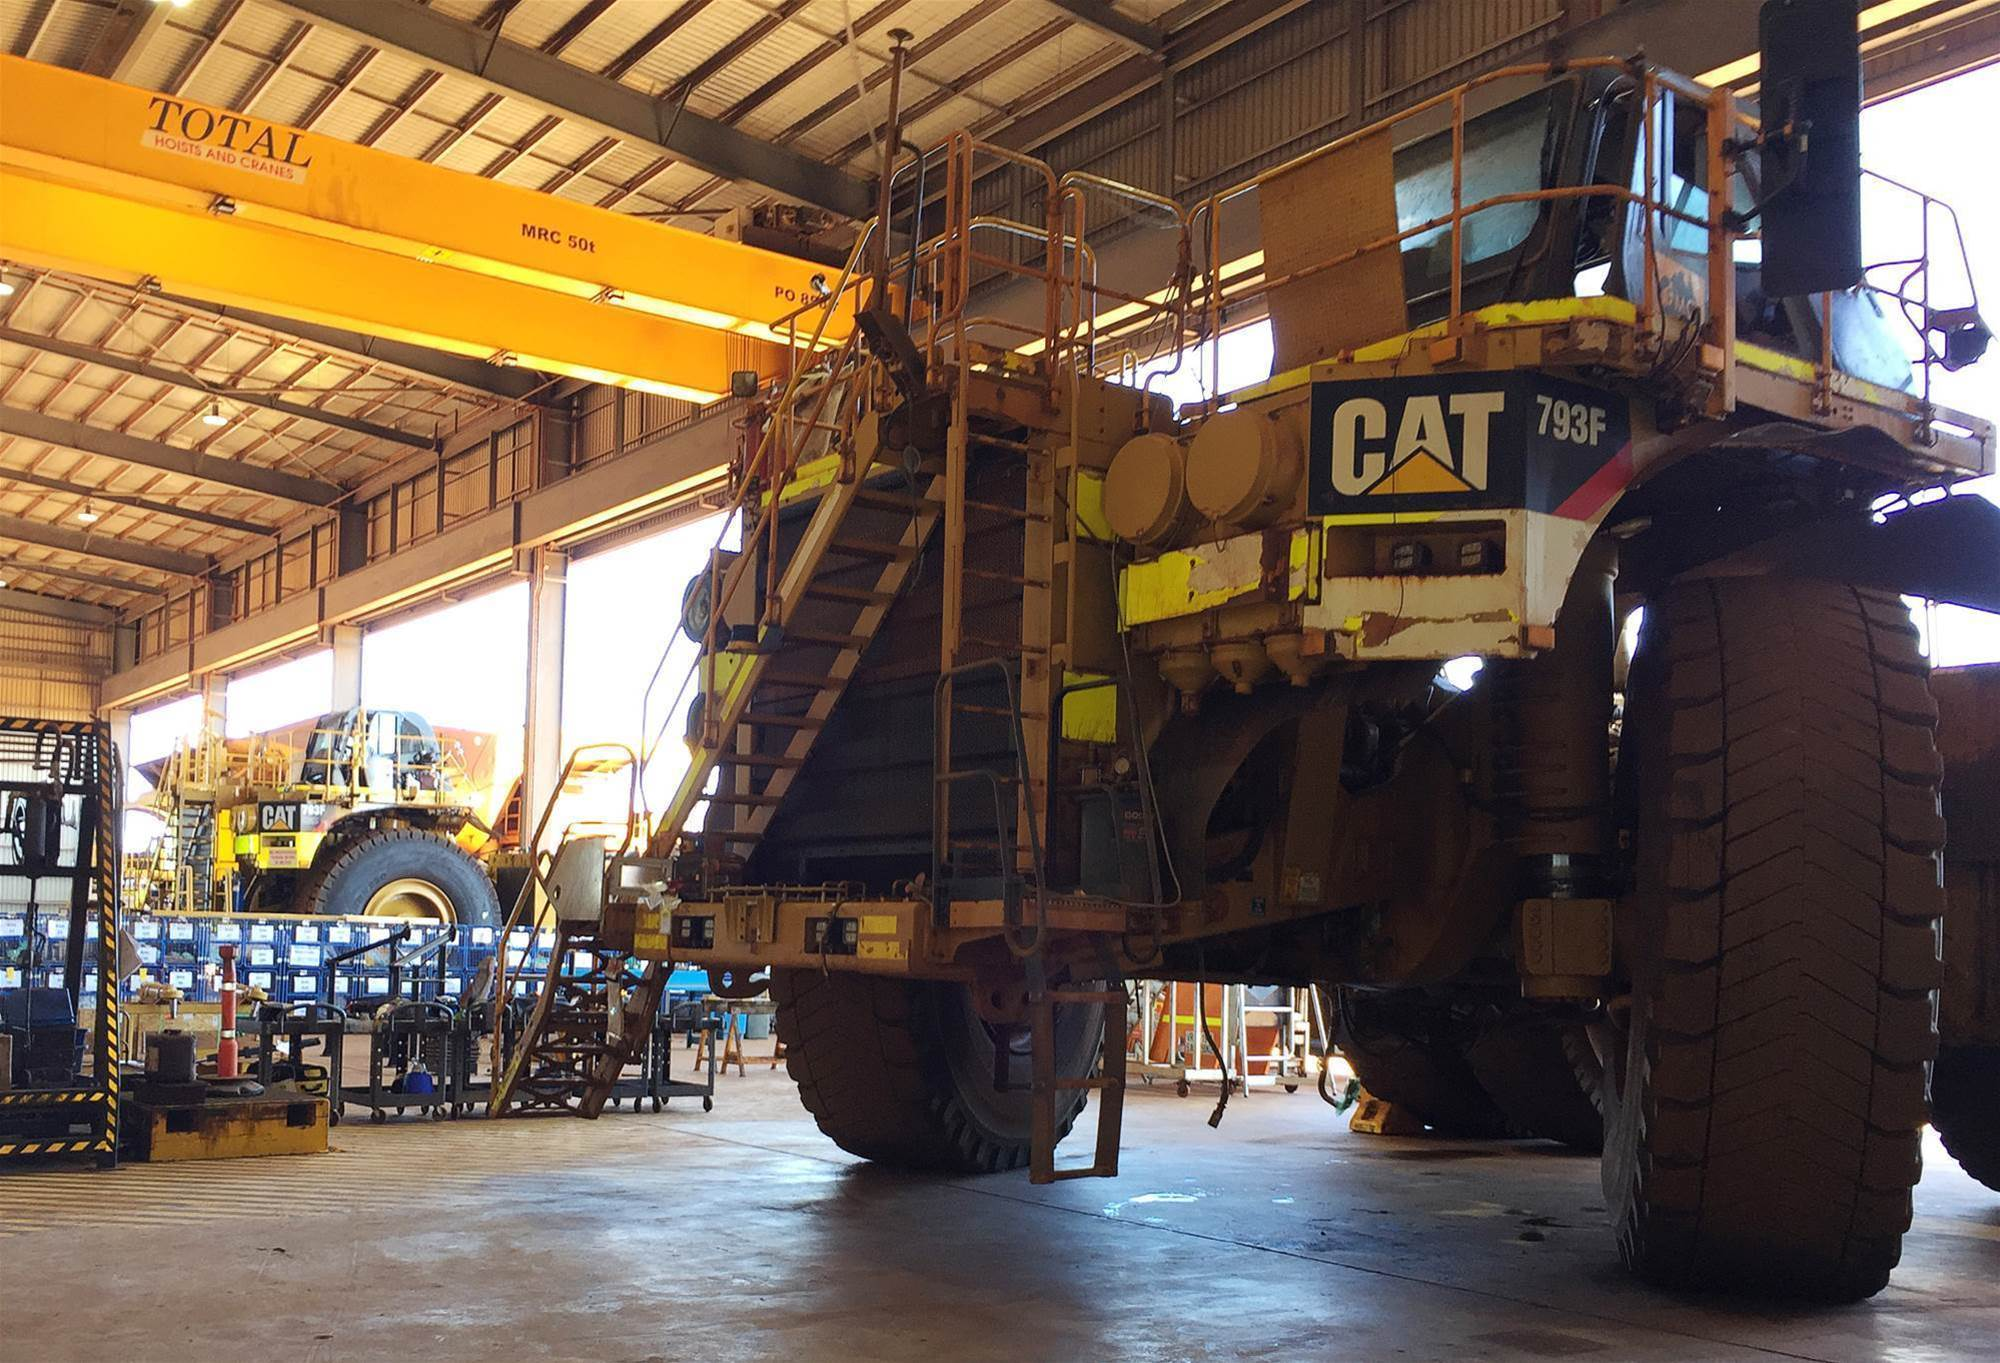 Fortescue says two driverless trucks involved in low-speed incident